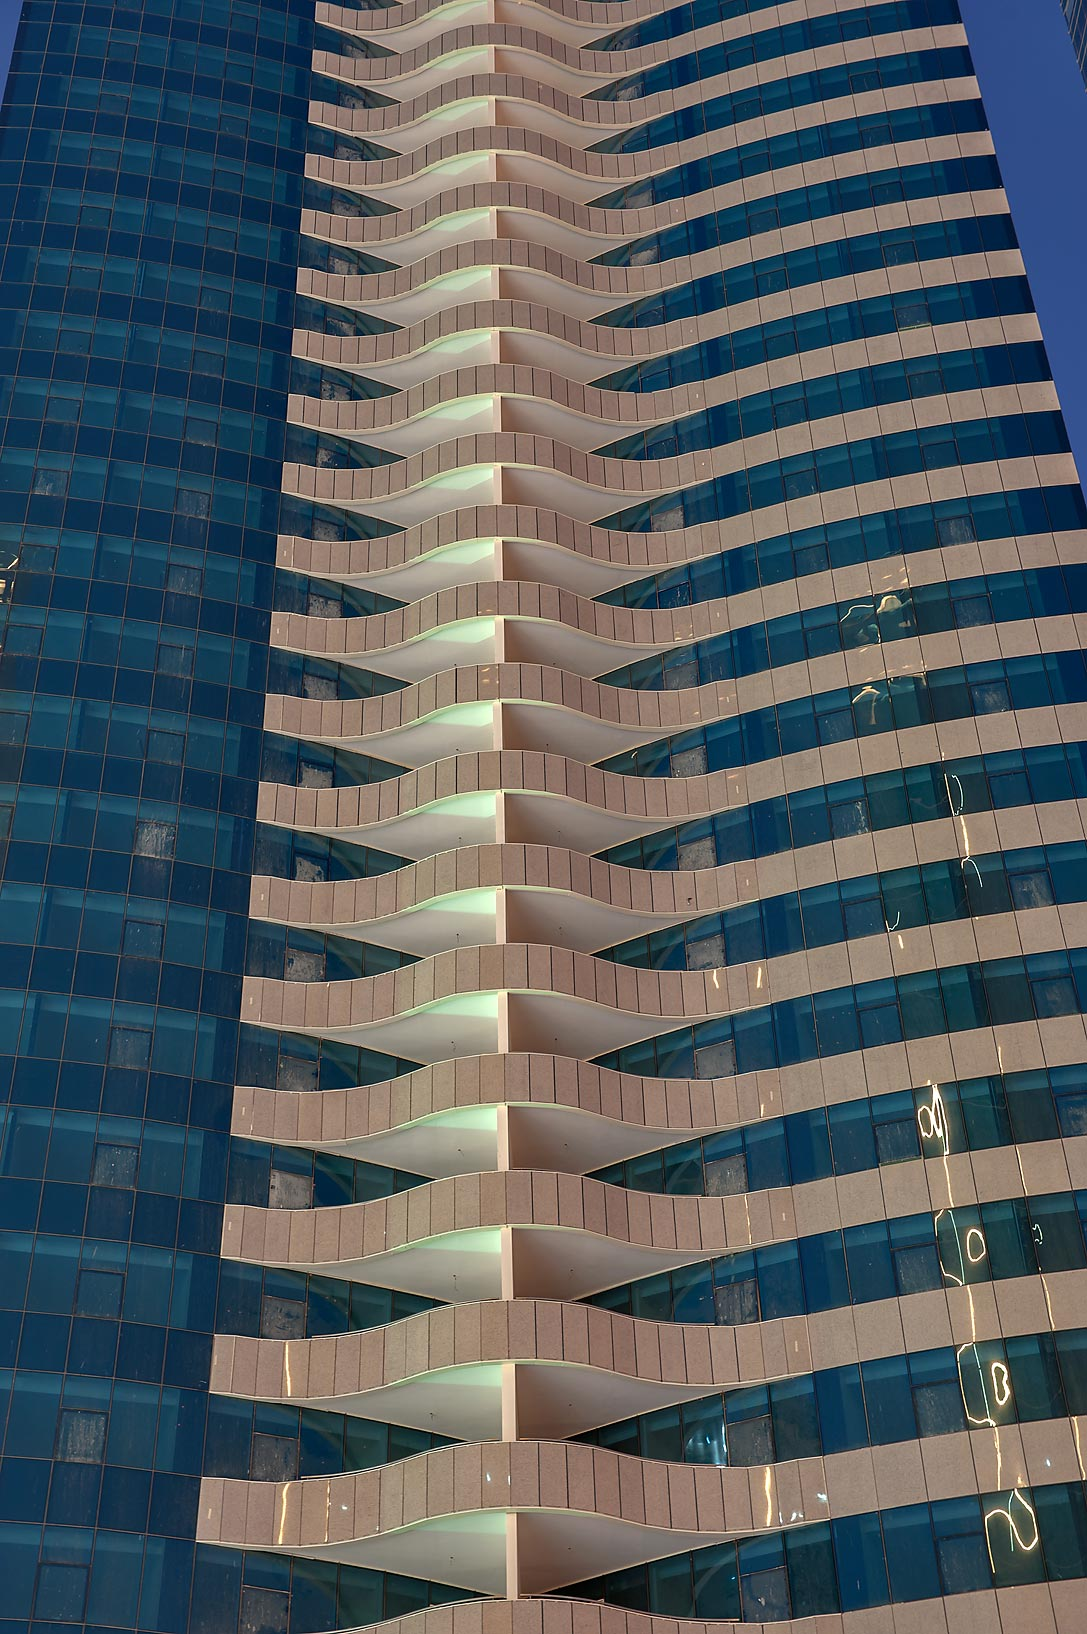 Pattern of balconies on a tower in West Bay, view from Q-Shield Offices St.. Doha, Qatar